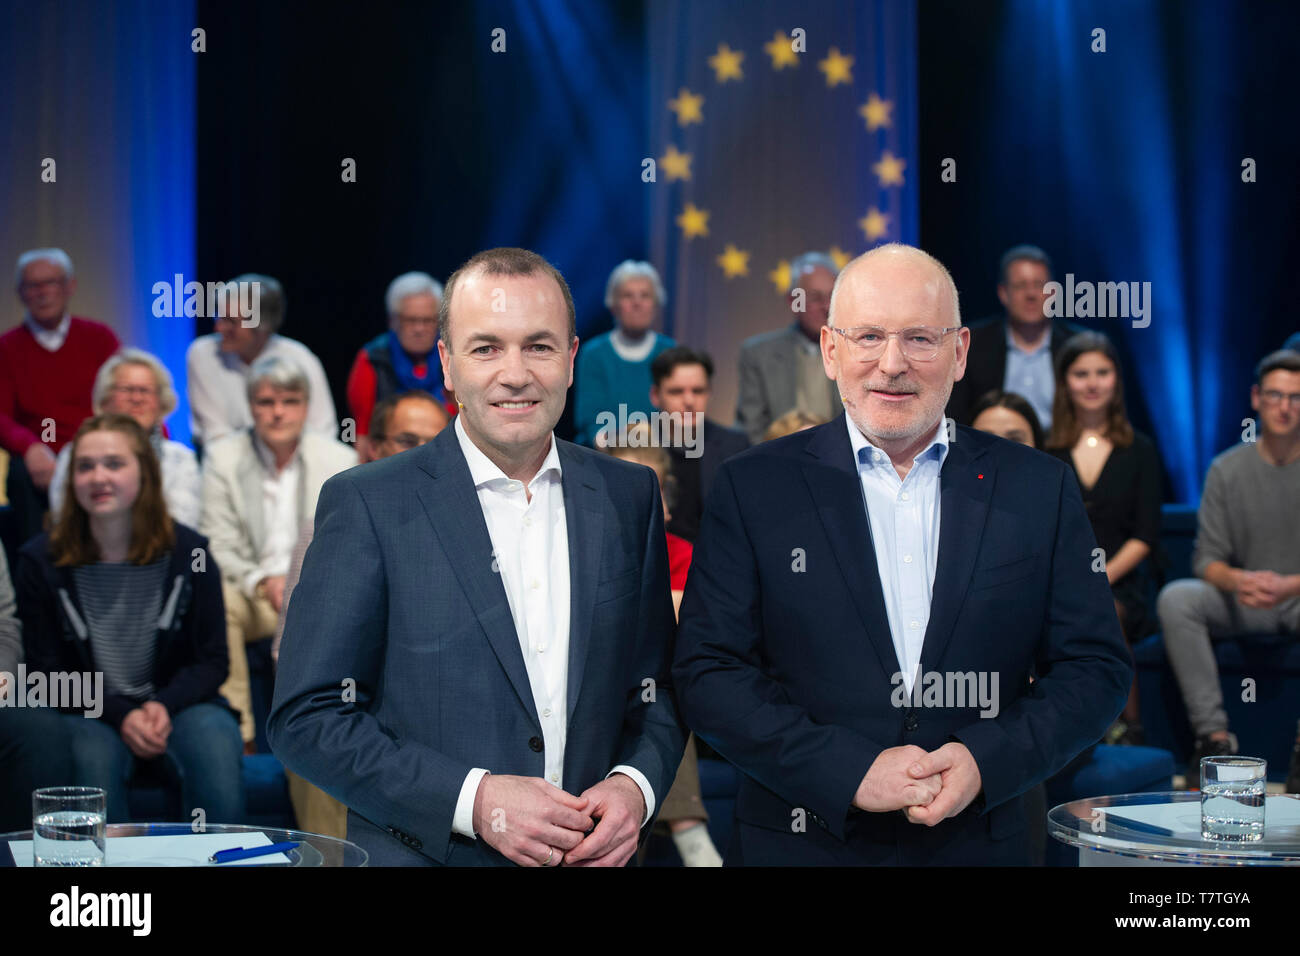 from left: Manfred WEBER, CSU, EPP lead candidate, Frans TIMMERMANS, Franciscus Cornelis Gerardus Maria 'Frans' Timmermans. Lead candidate of the PES, 'Wahlarena' in the first with the European leading candidates Frans Timmermans (PES) and Manfred Weber (EPP), WDR Koeln-Bocklemuend, 07.05.2019, | usage worldwide - Stock Image